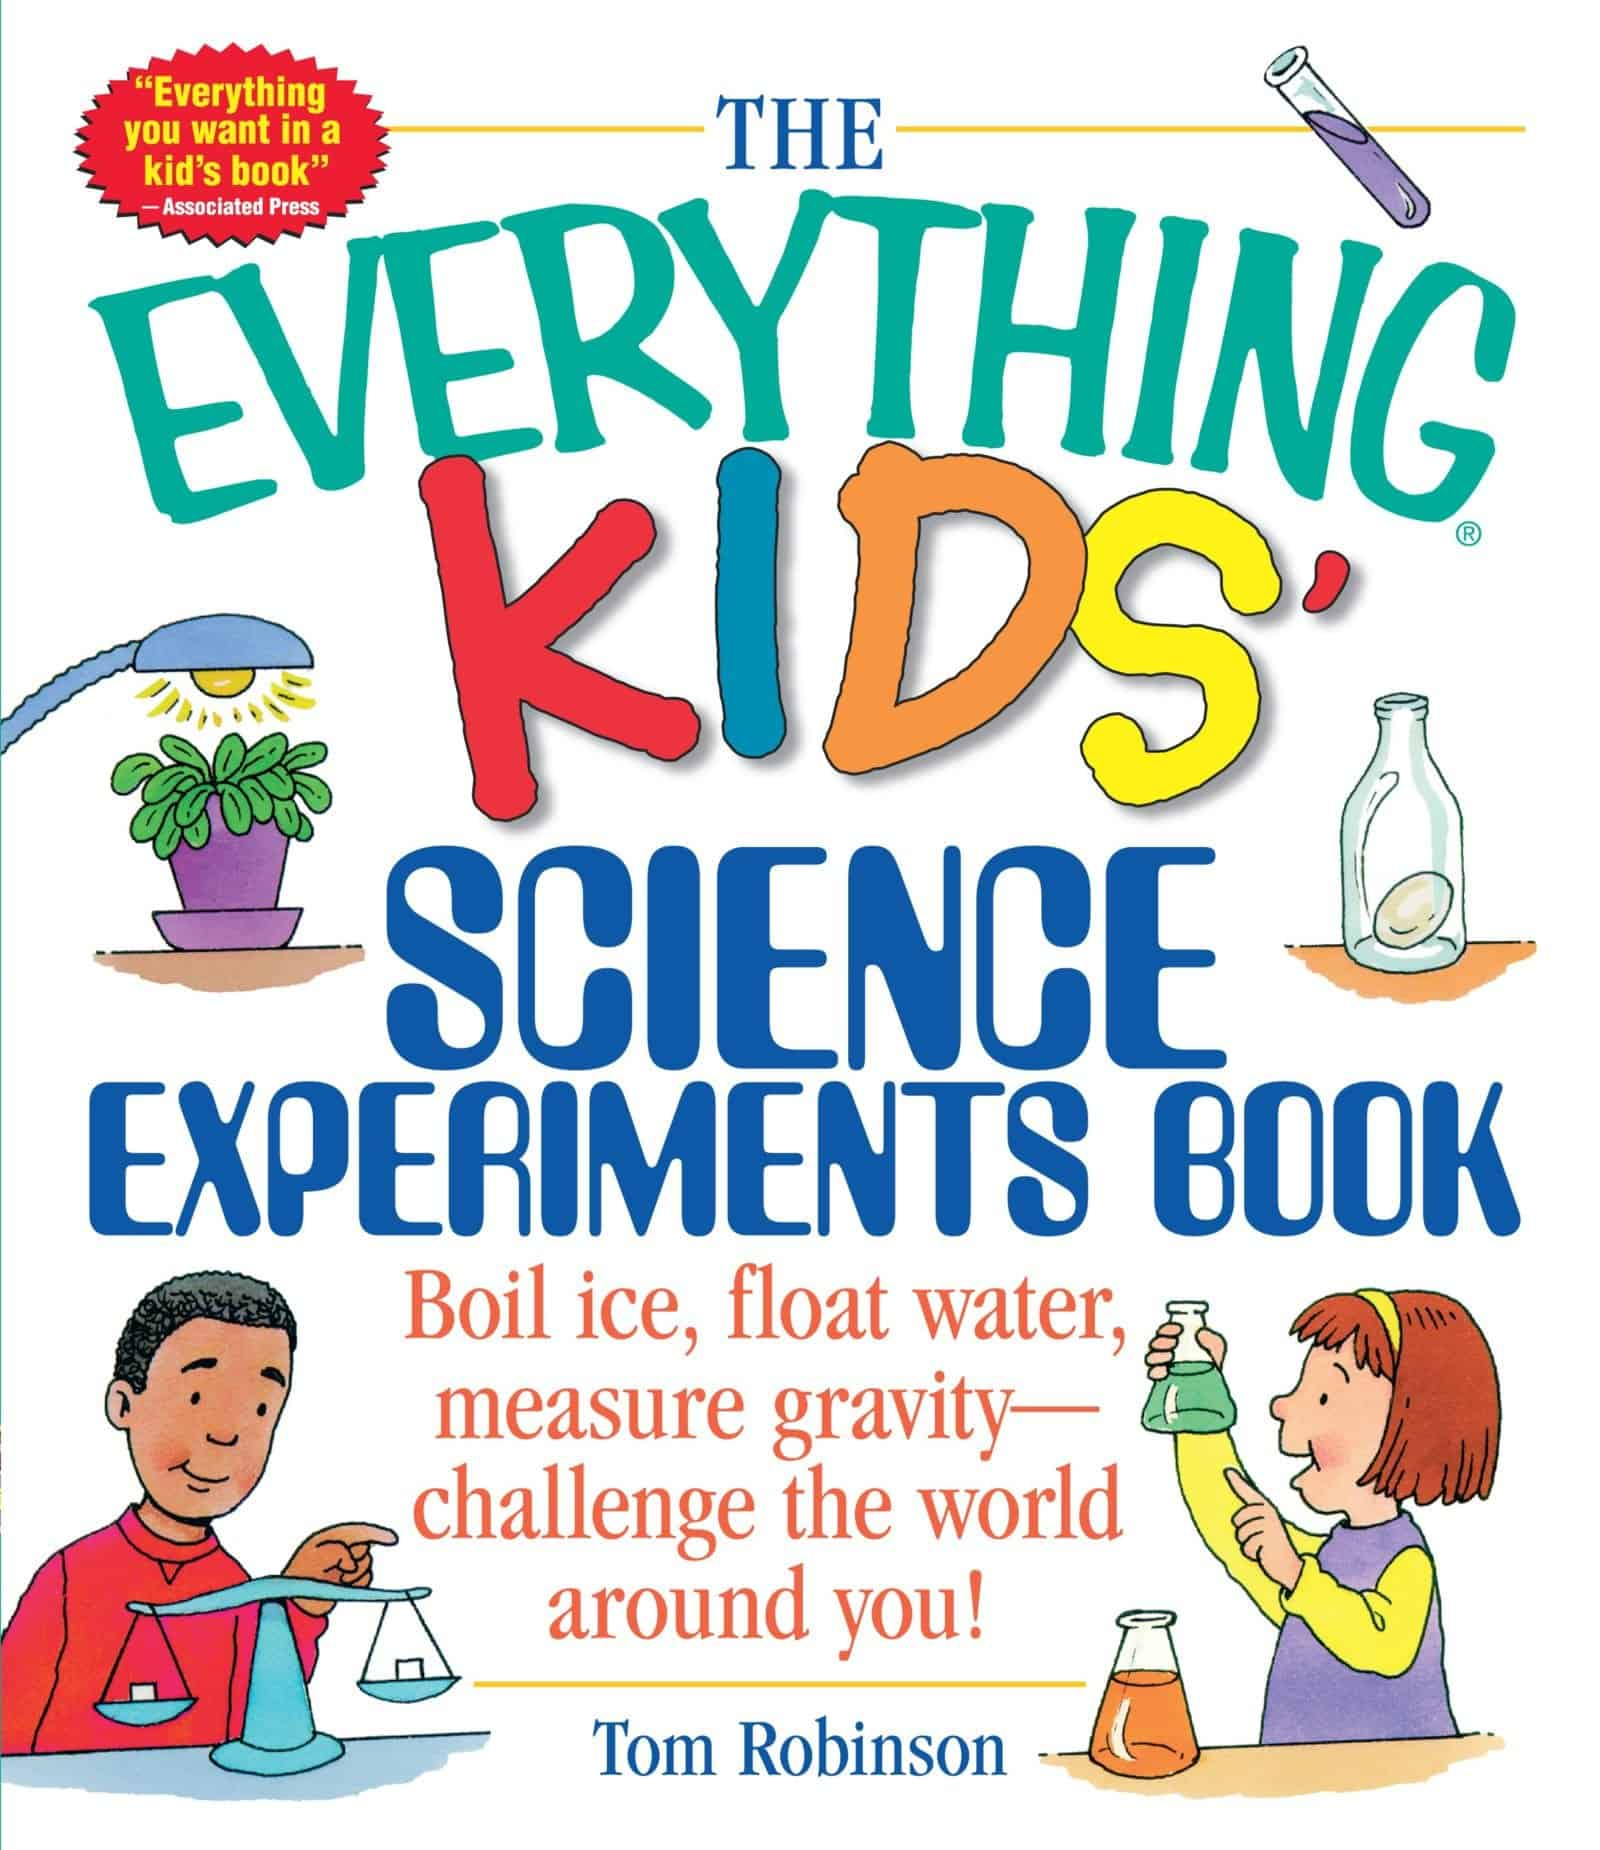 The Everything Kids Science Experiments Book 599 3 Boys And A